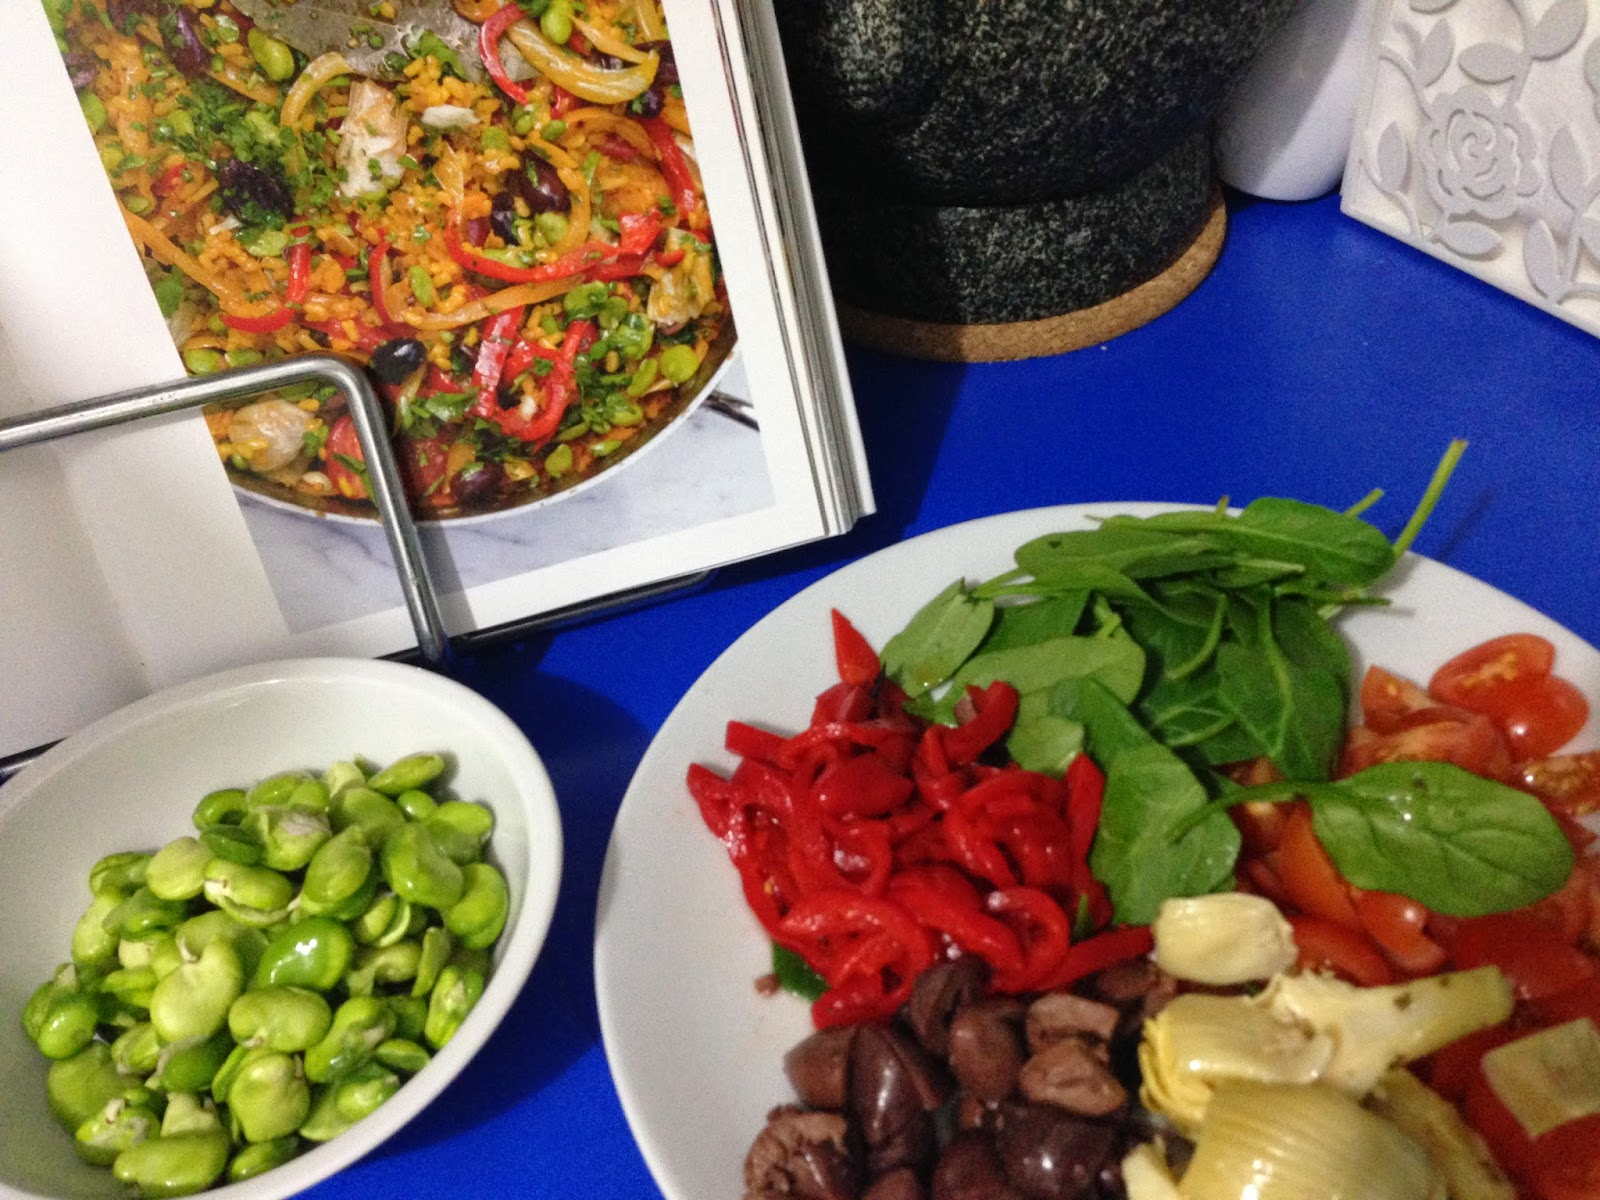 Yotam Ottolenghi 's Multi-vegetable Paella from Plenty